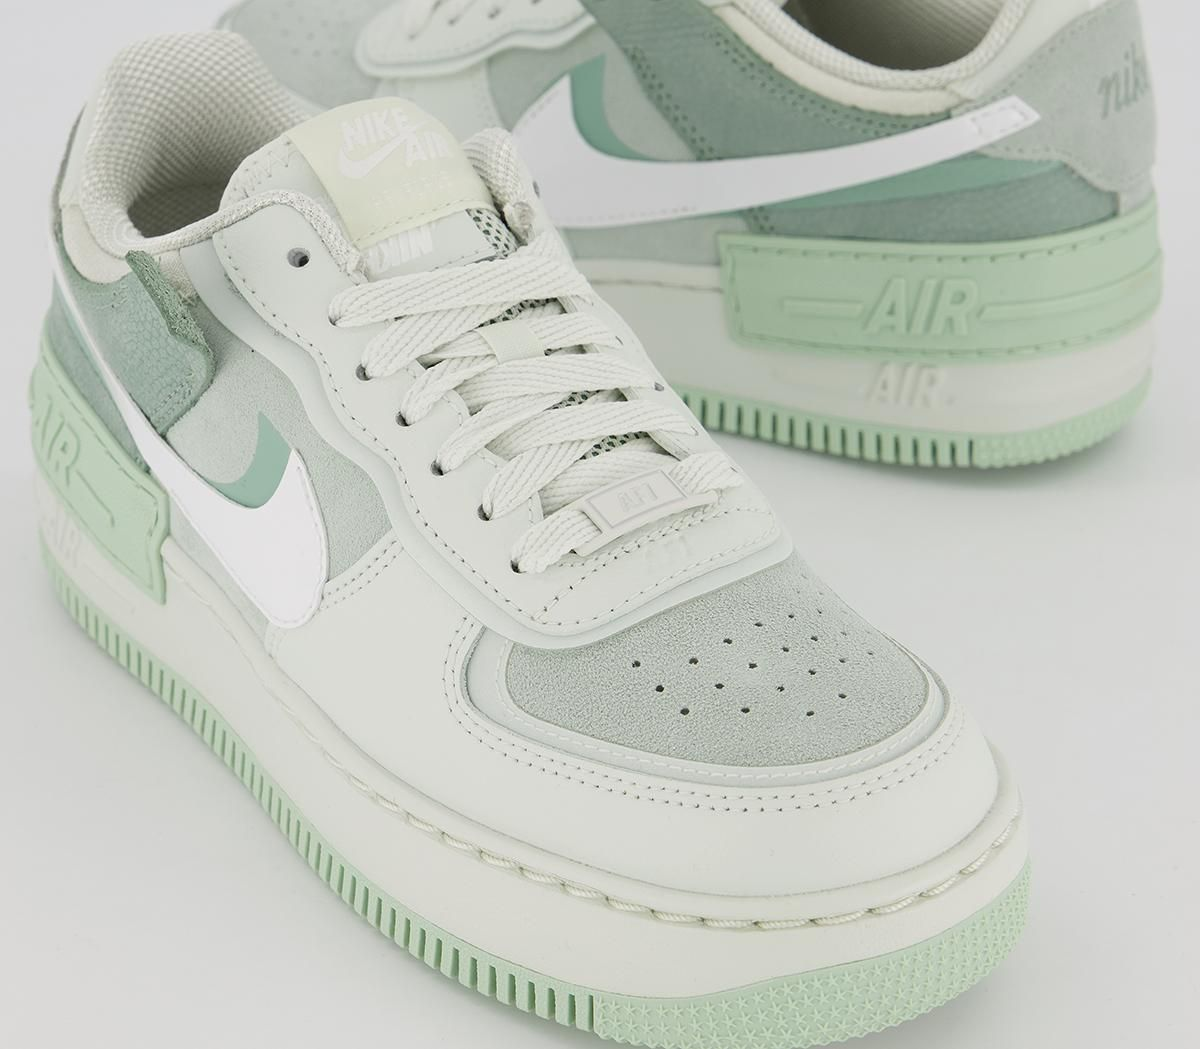 Nike Air Force 1 Shadow Trainers Spruce Aura White Pistachio Frost ...